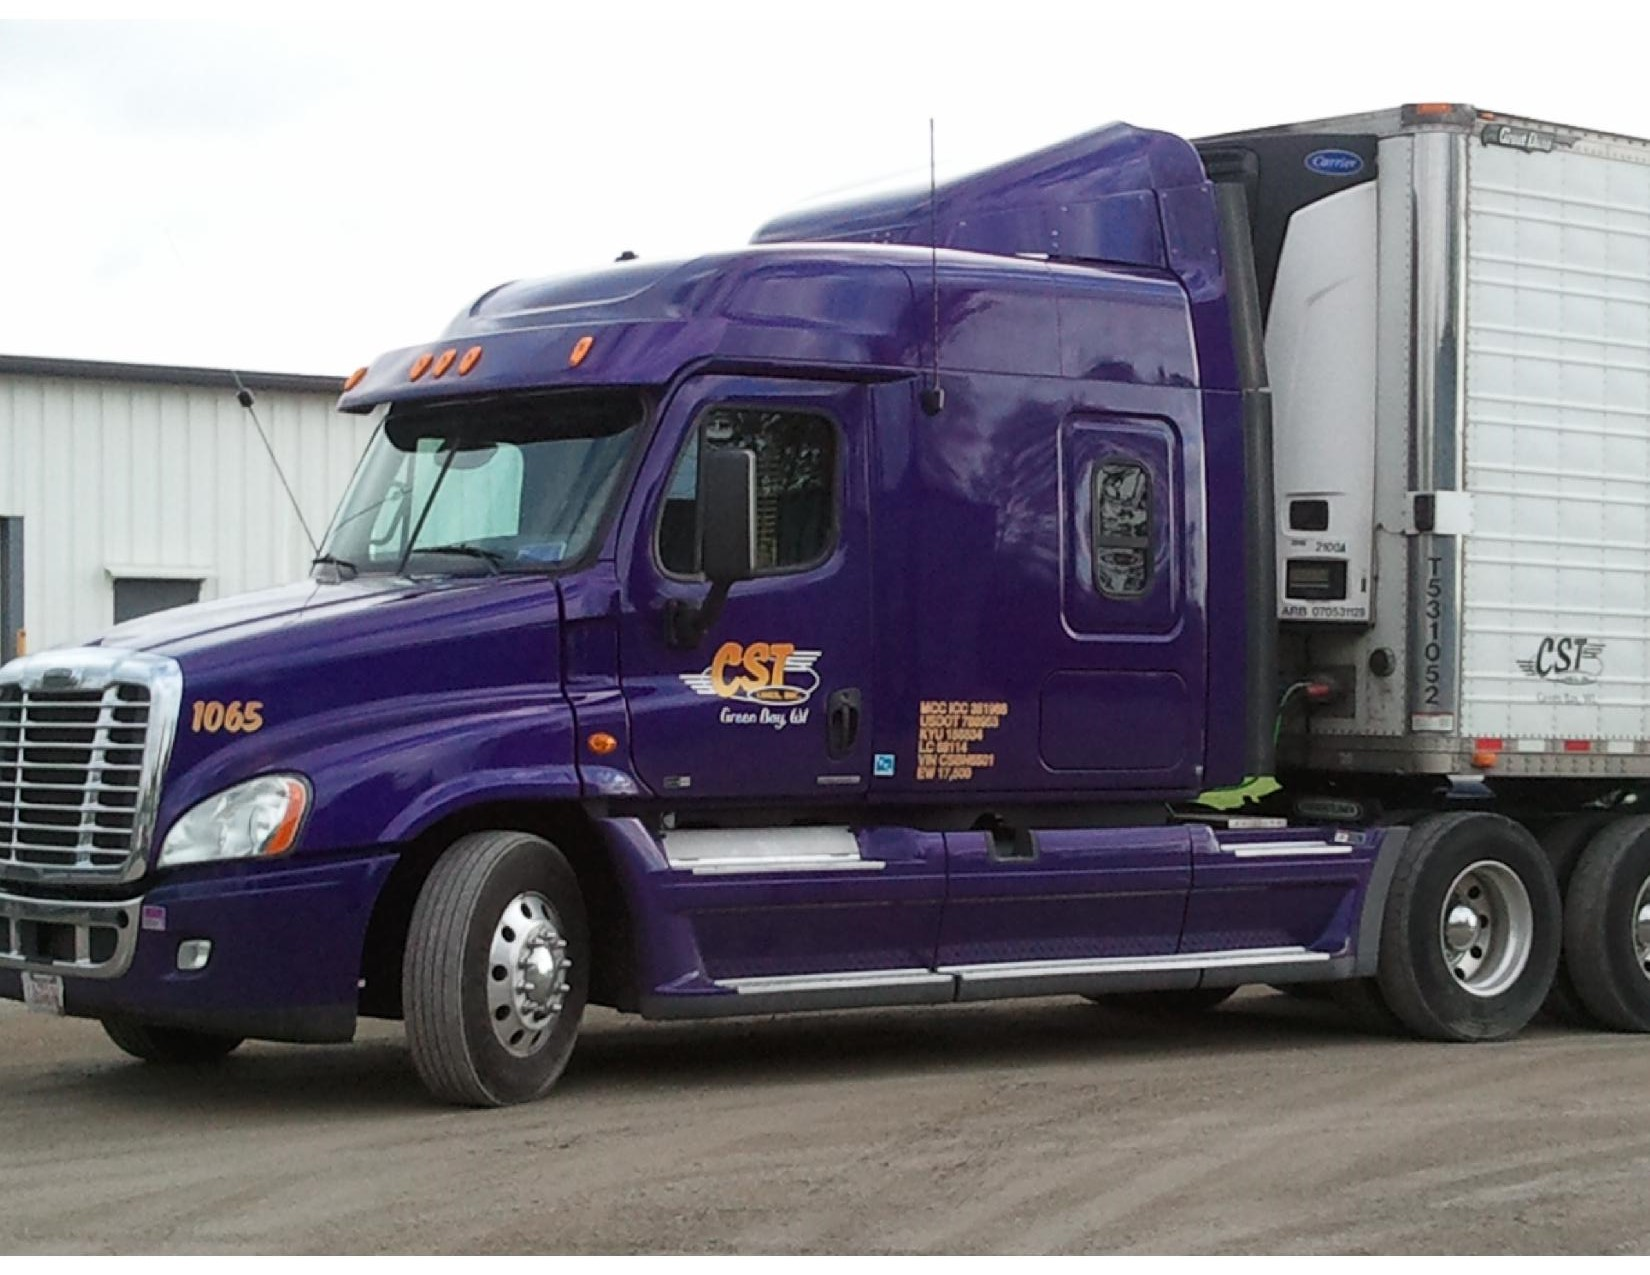 Front of Truck - CST Lines, Inc. Green Bay, WI